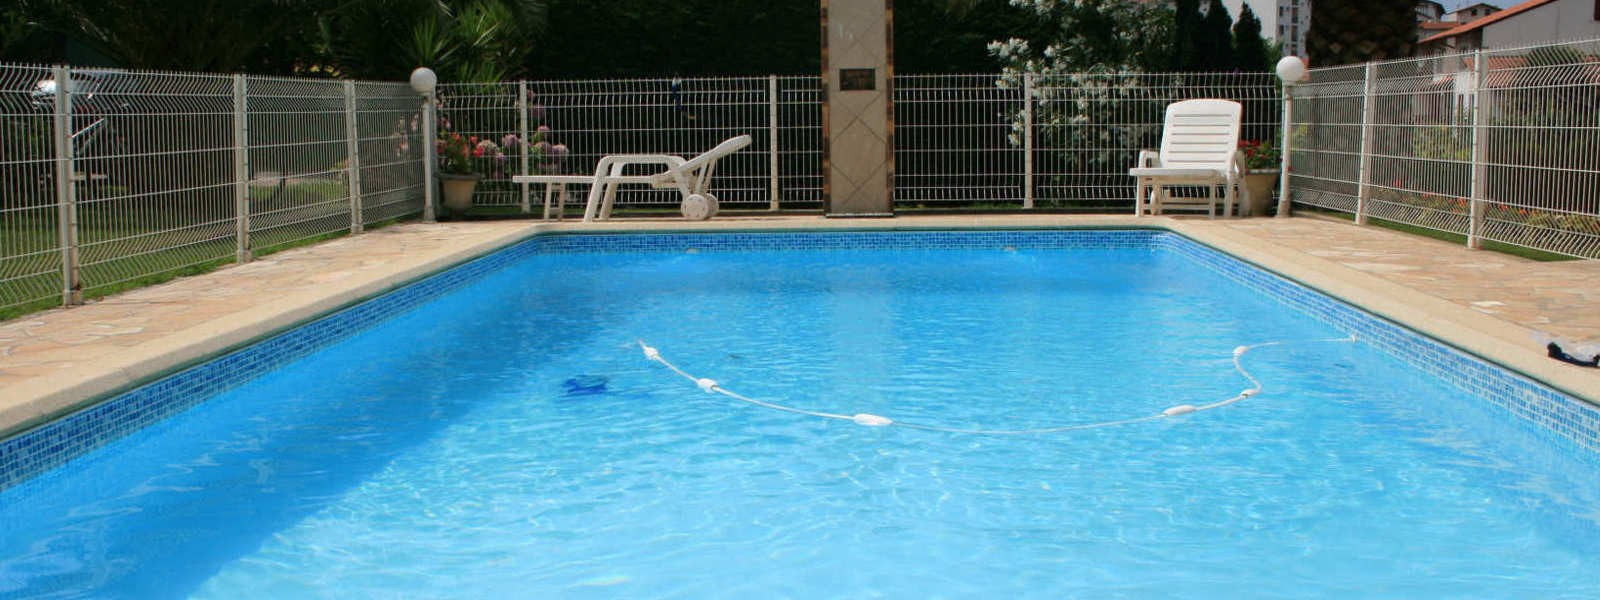 piscine privée location hendaye